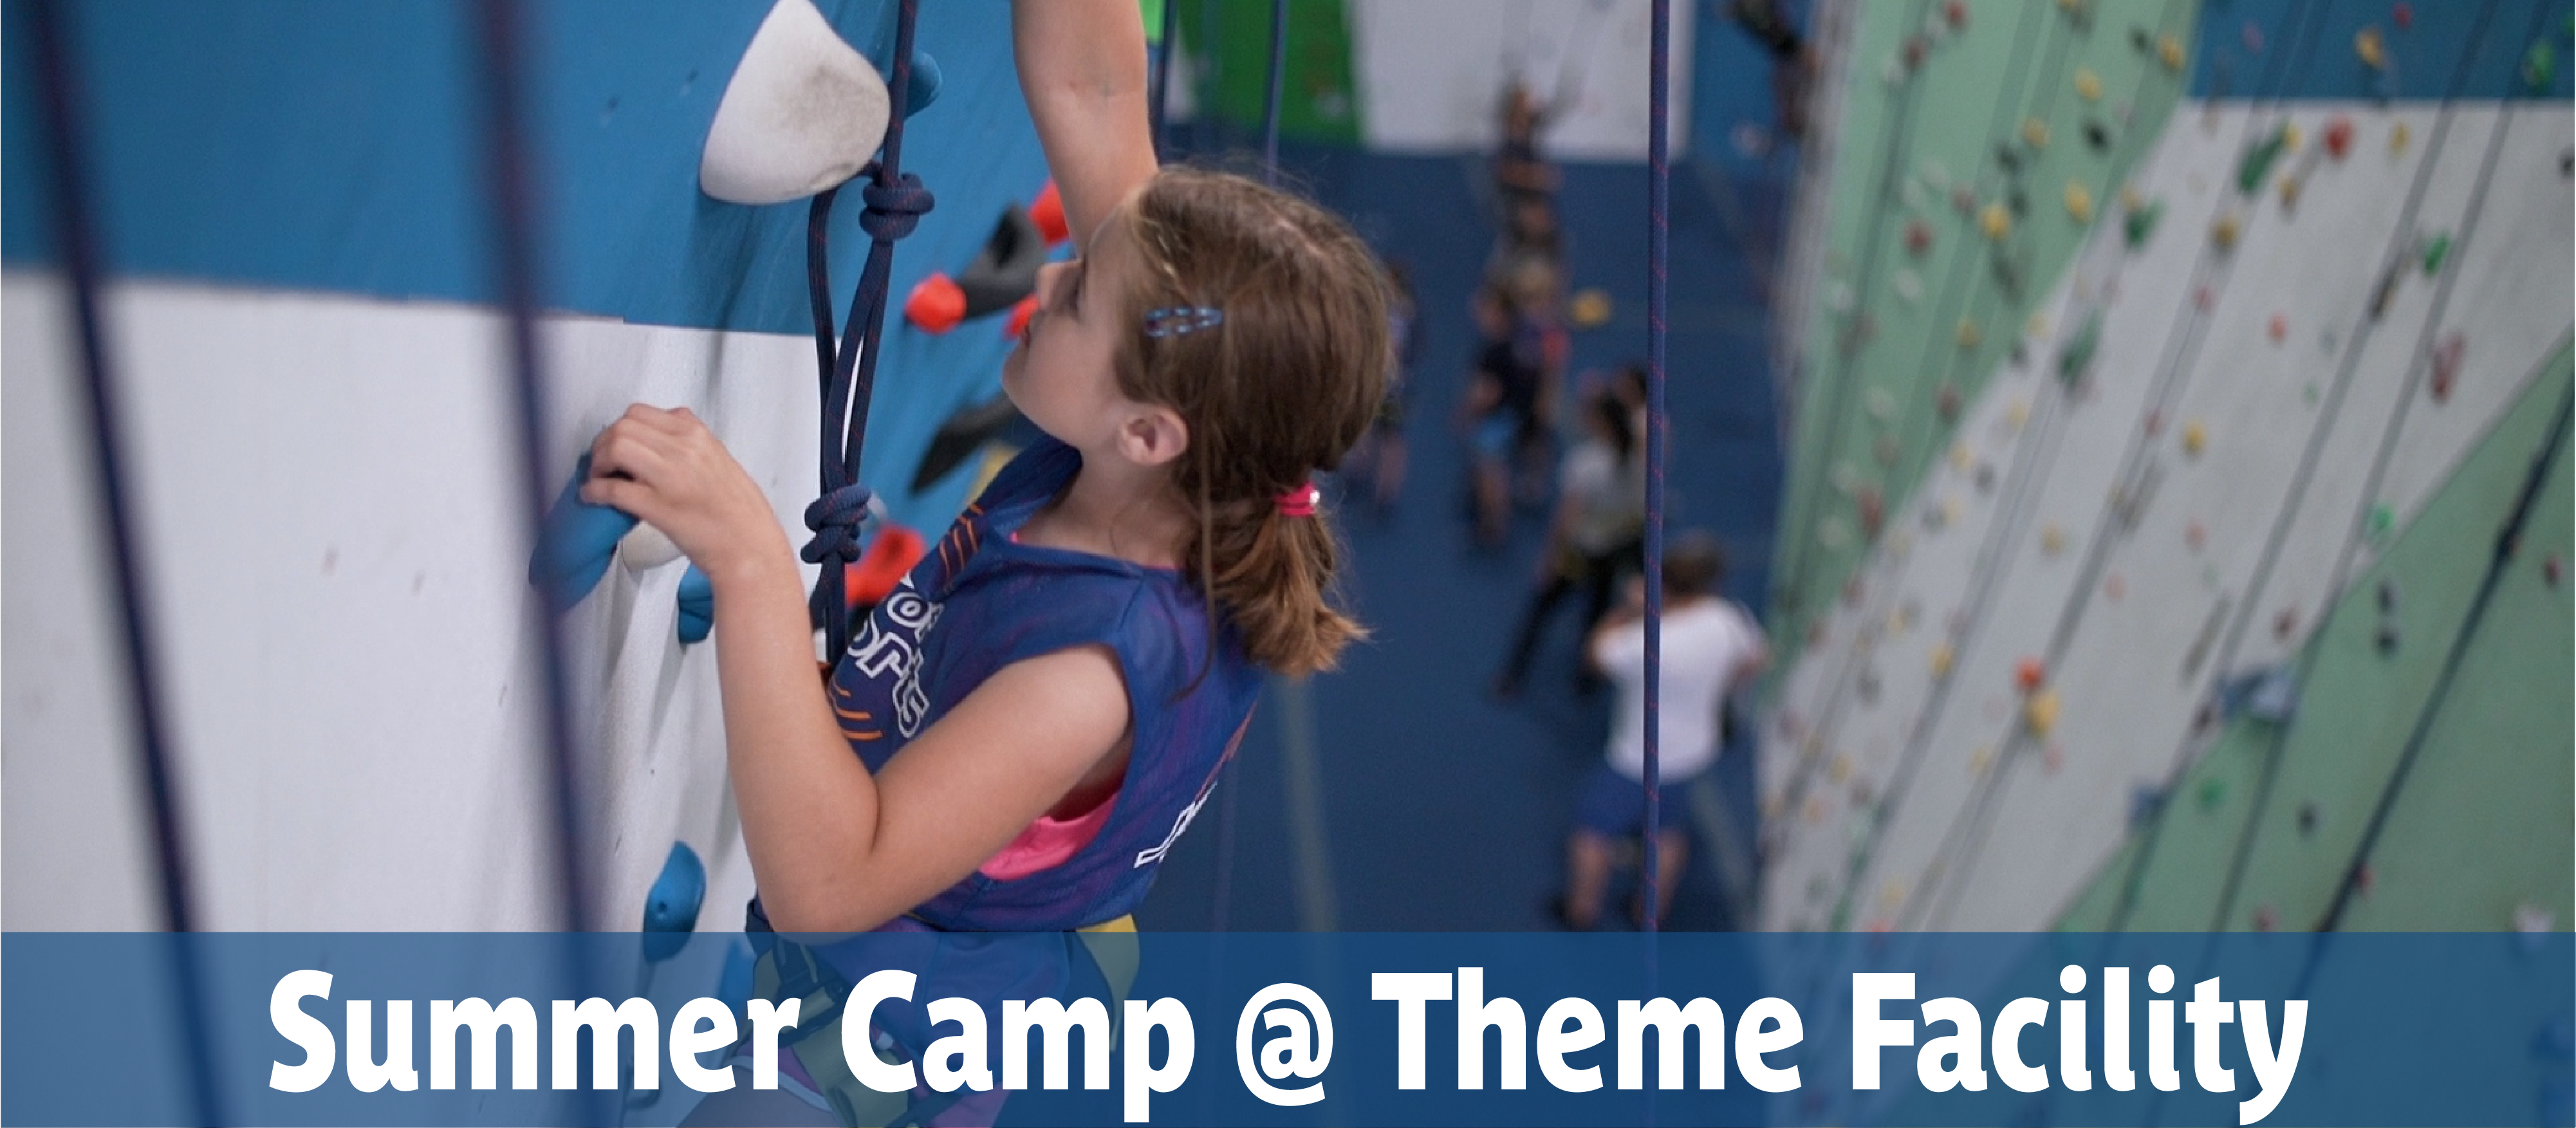 Summer Camp at Theme Facility